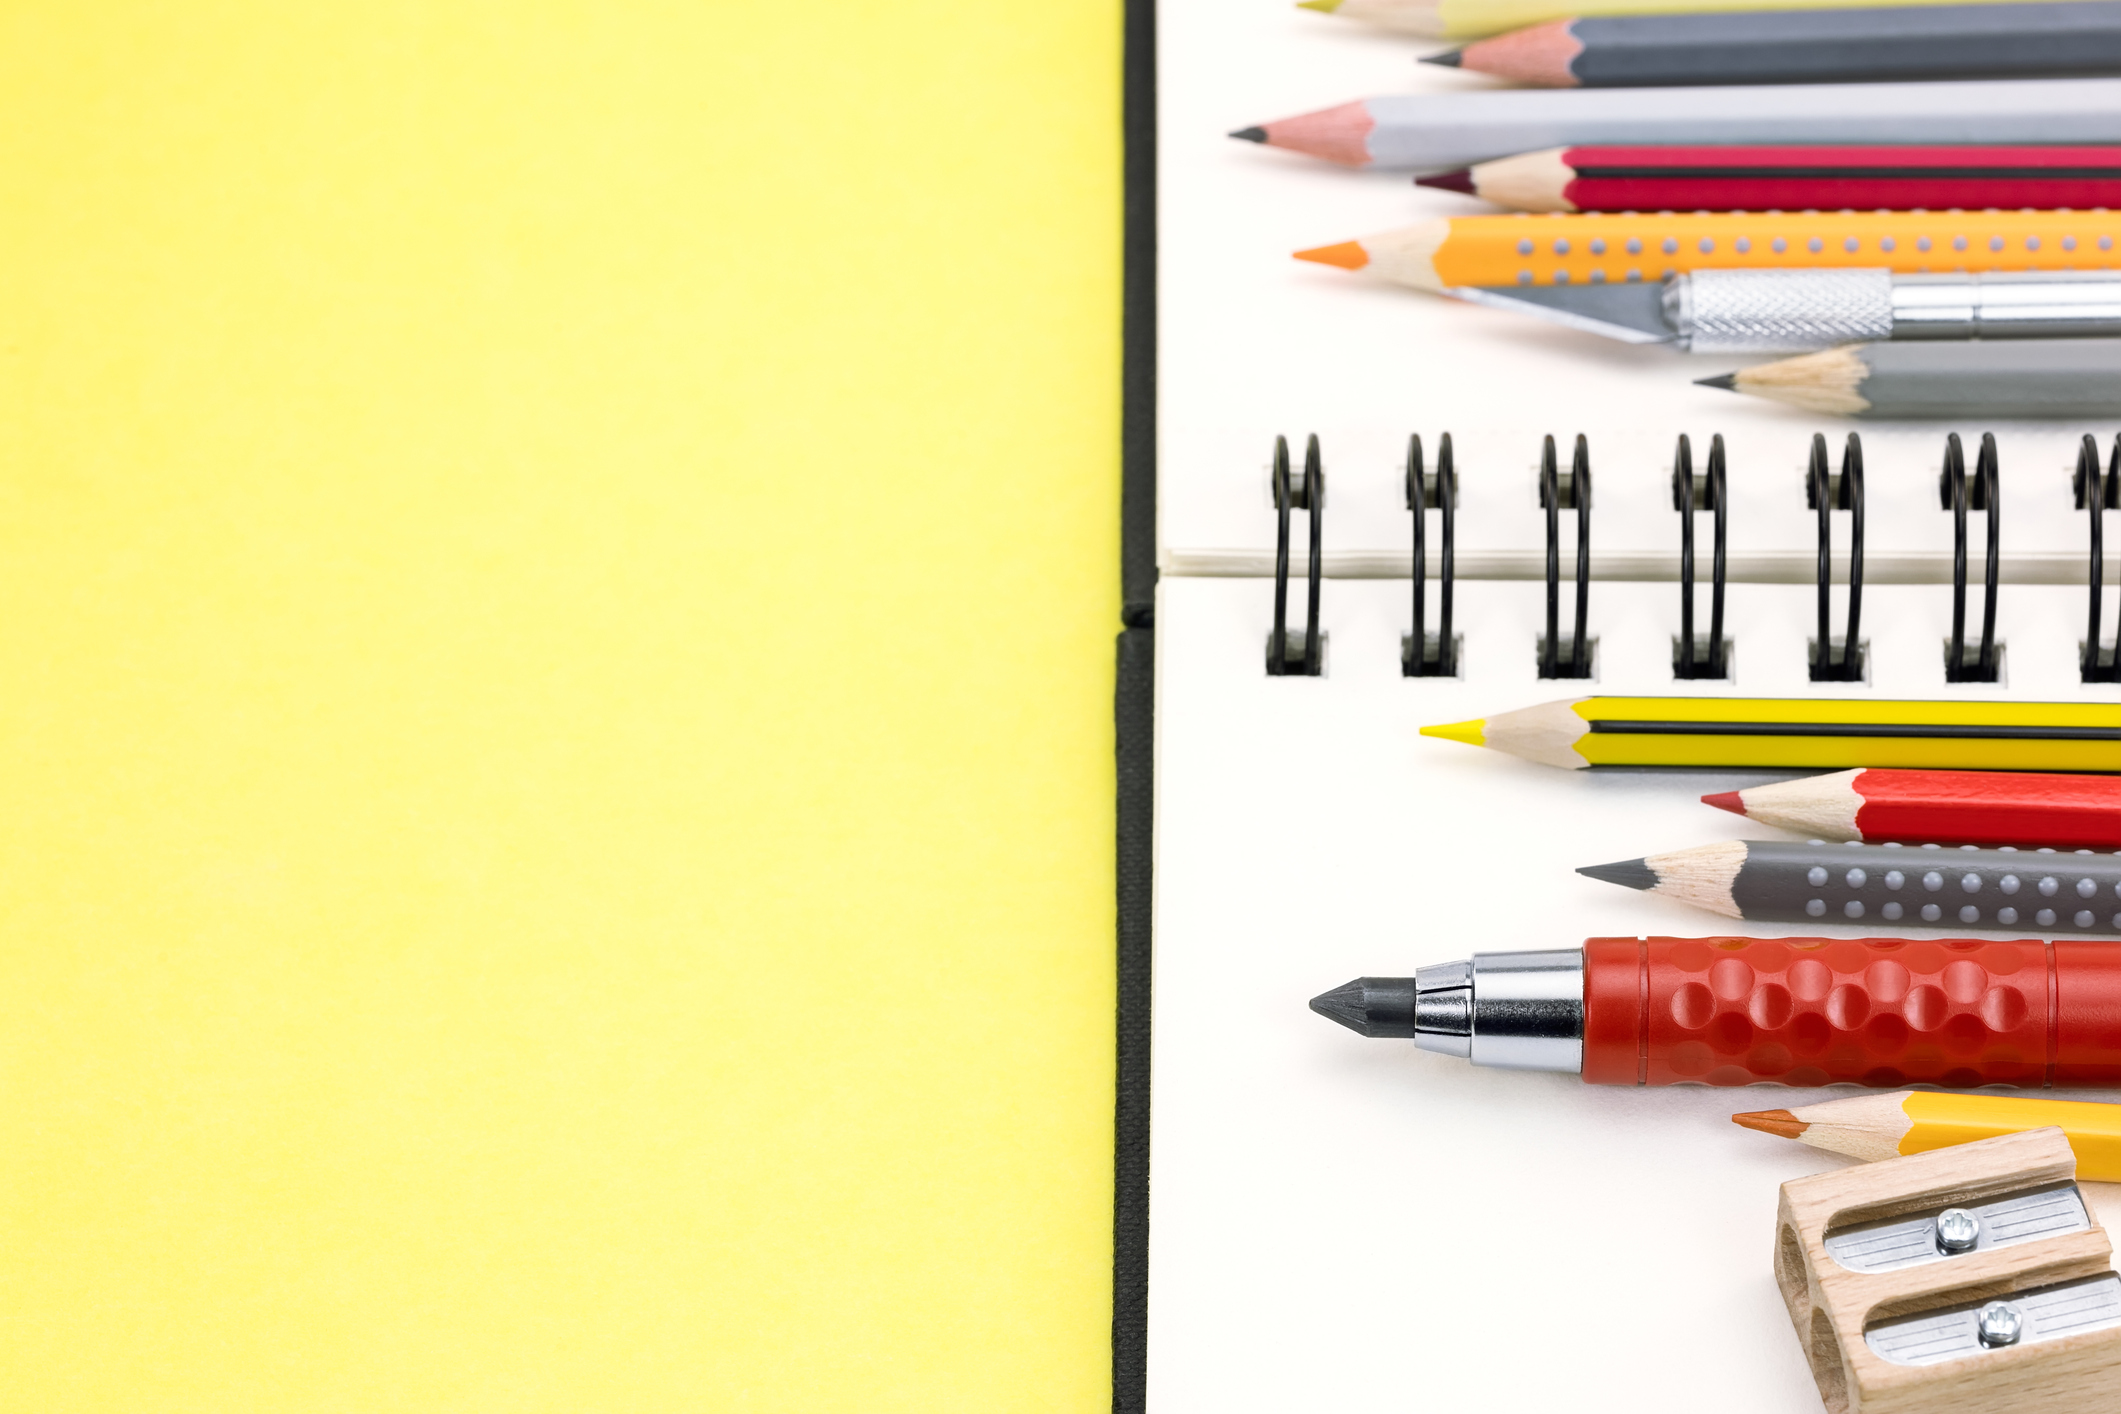 pencils of different colors and spiral notepad on yellow backgroud